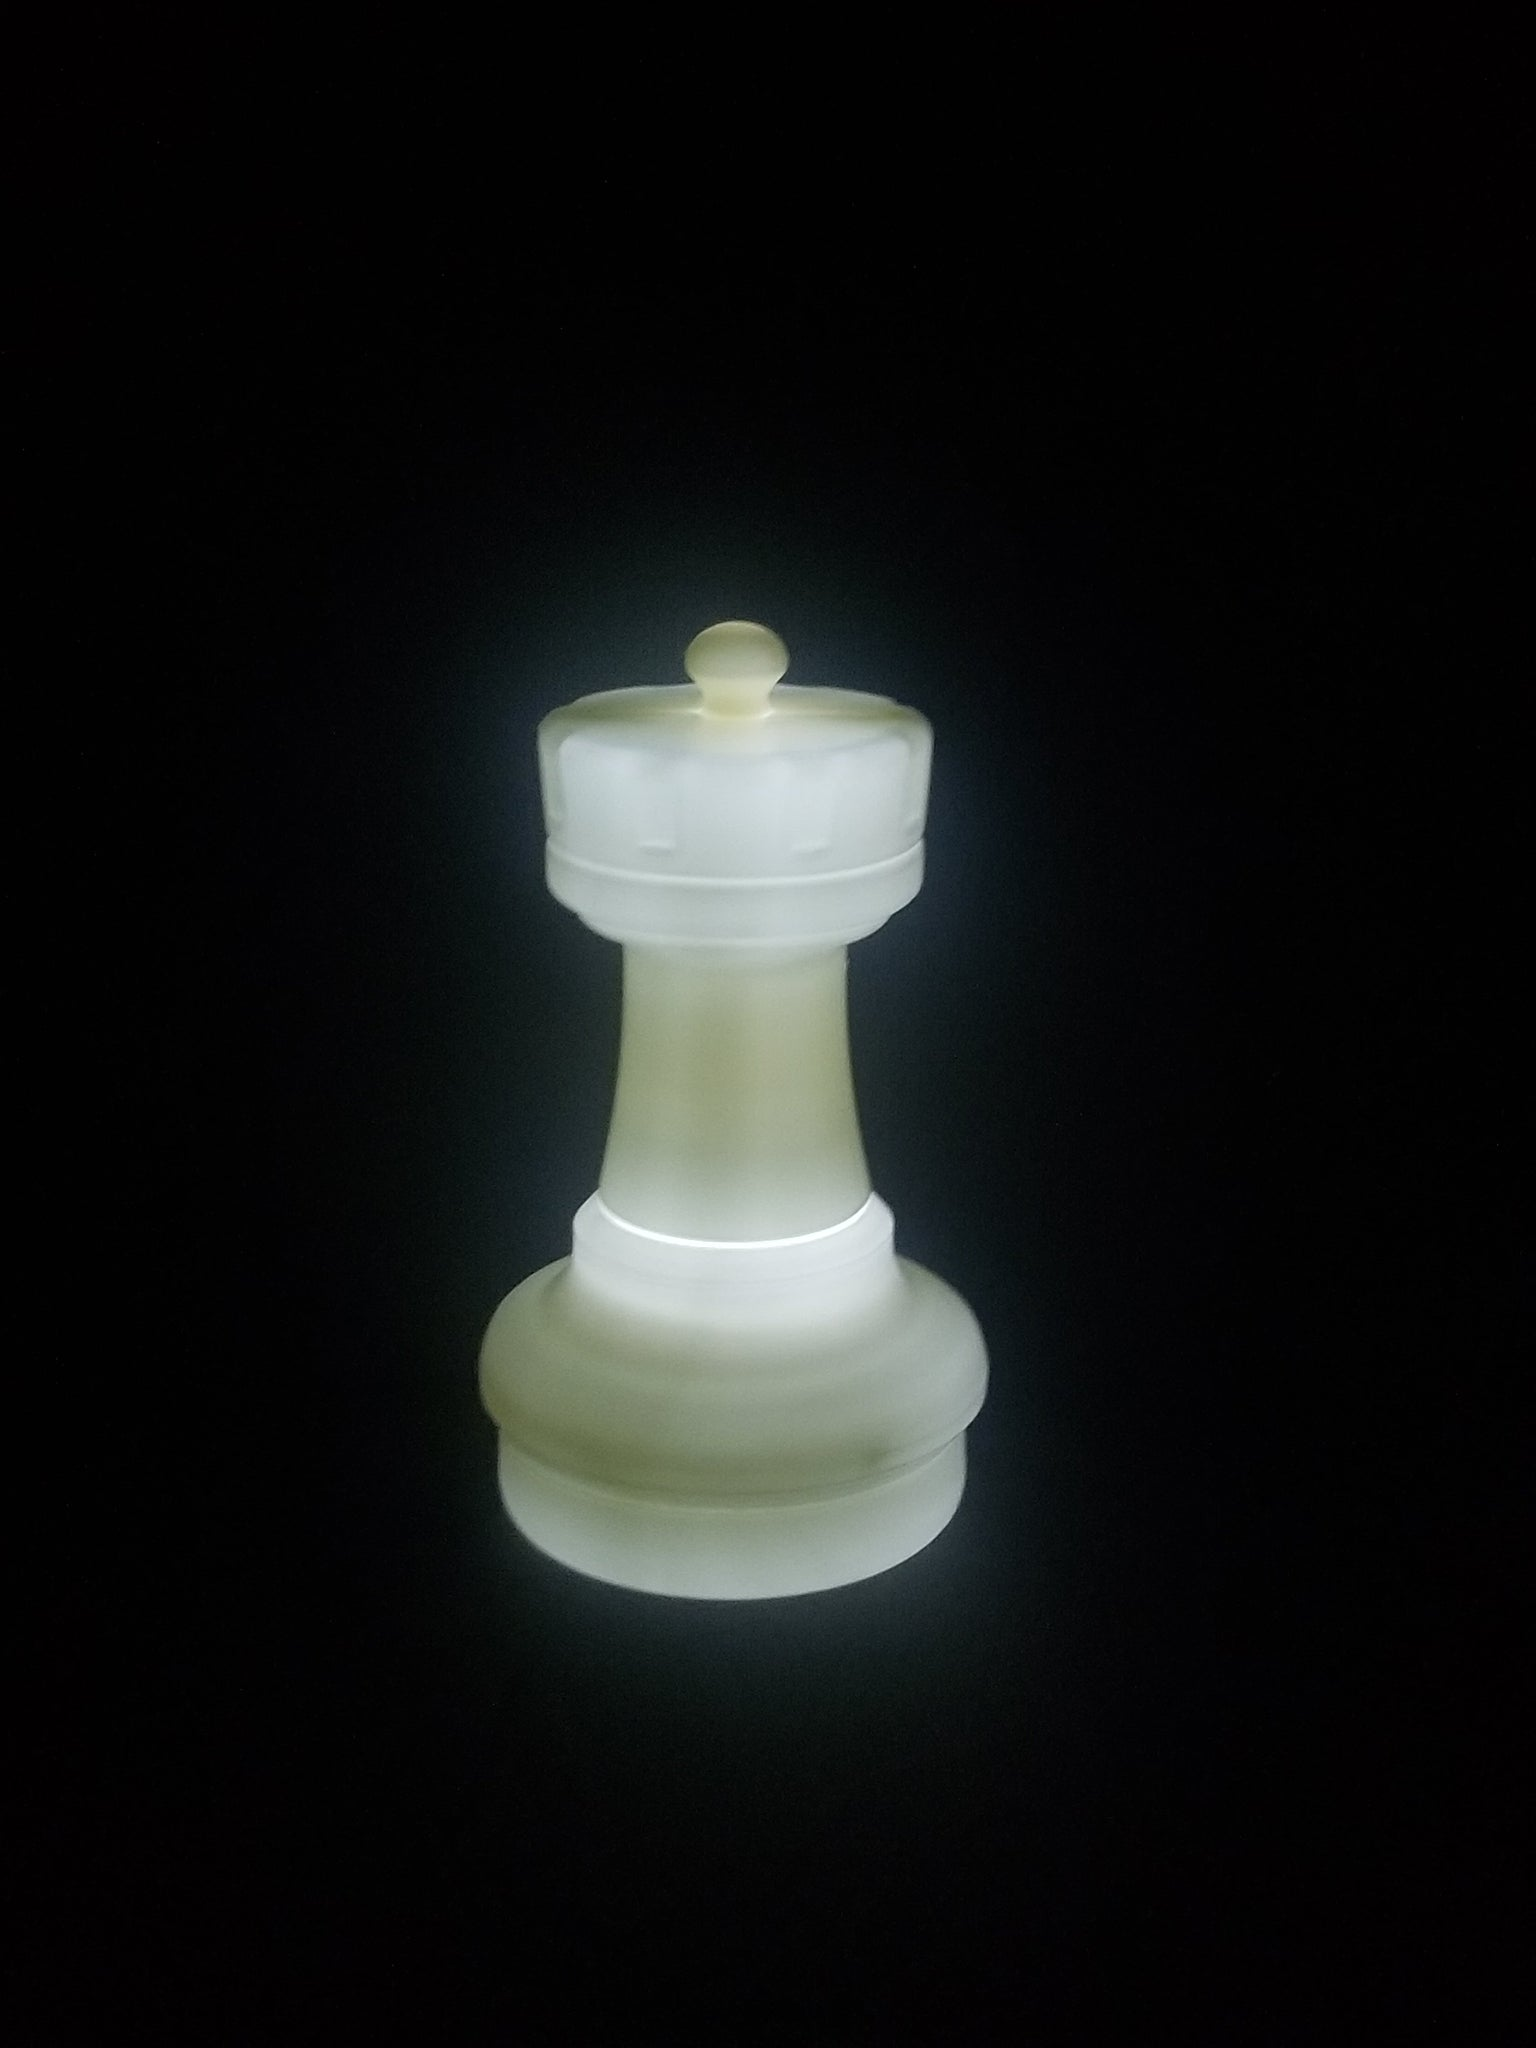 MegaChess 17 Inch LED Rook Individual Plastic Chess Piece - White |  | MegaChess.com